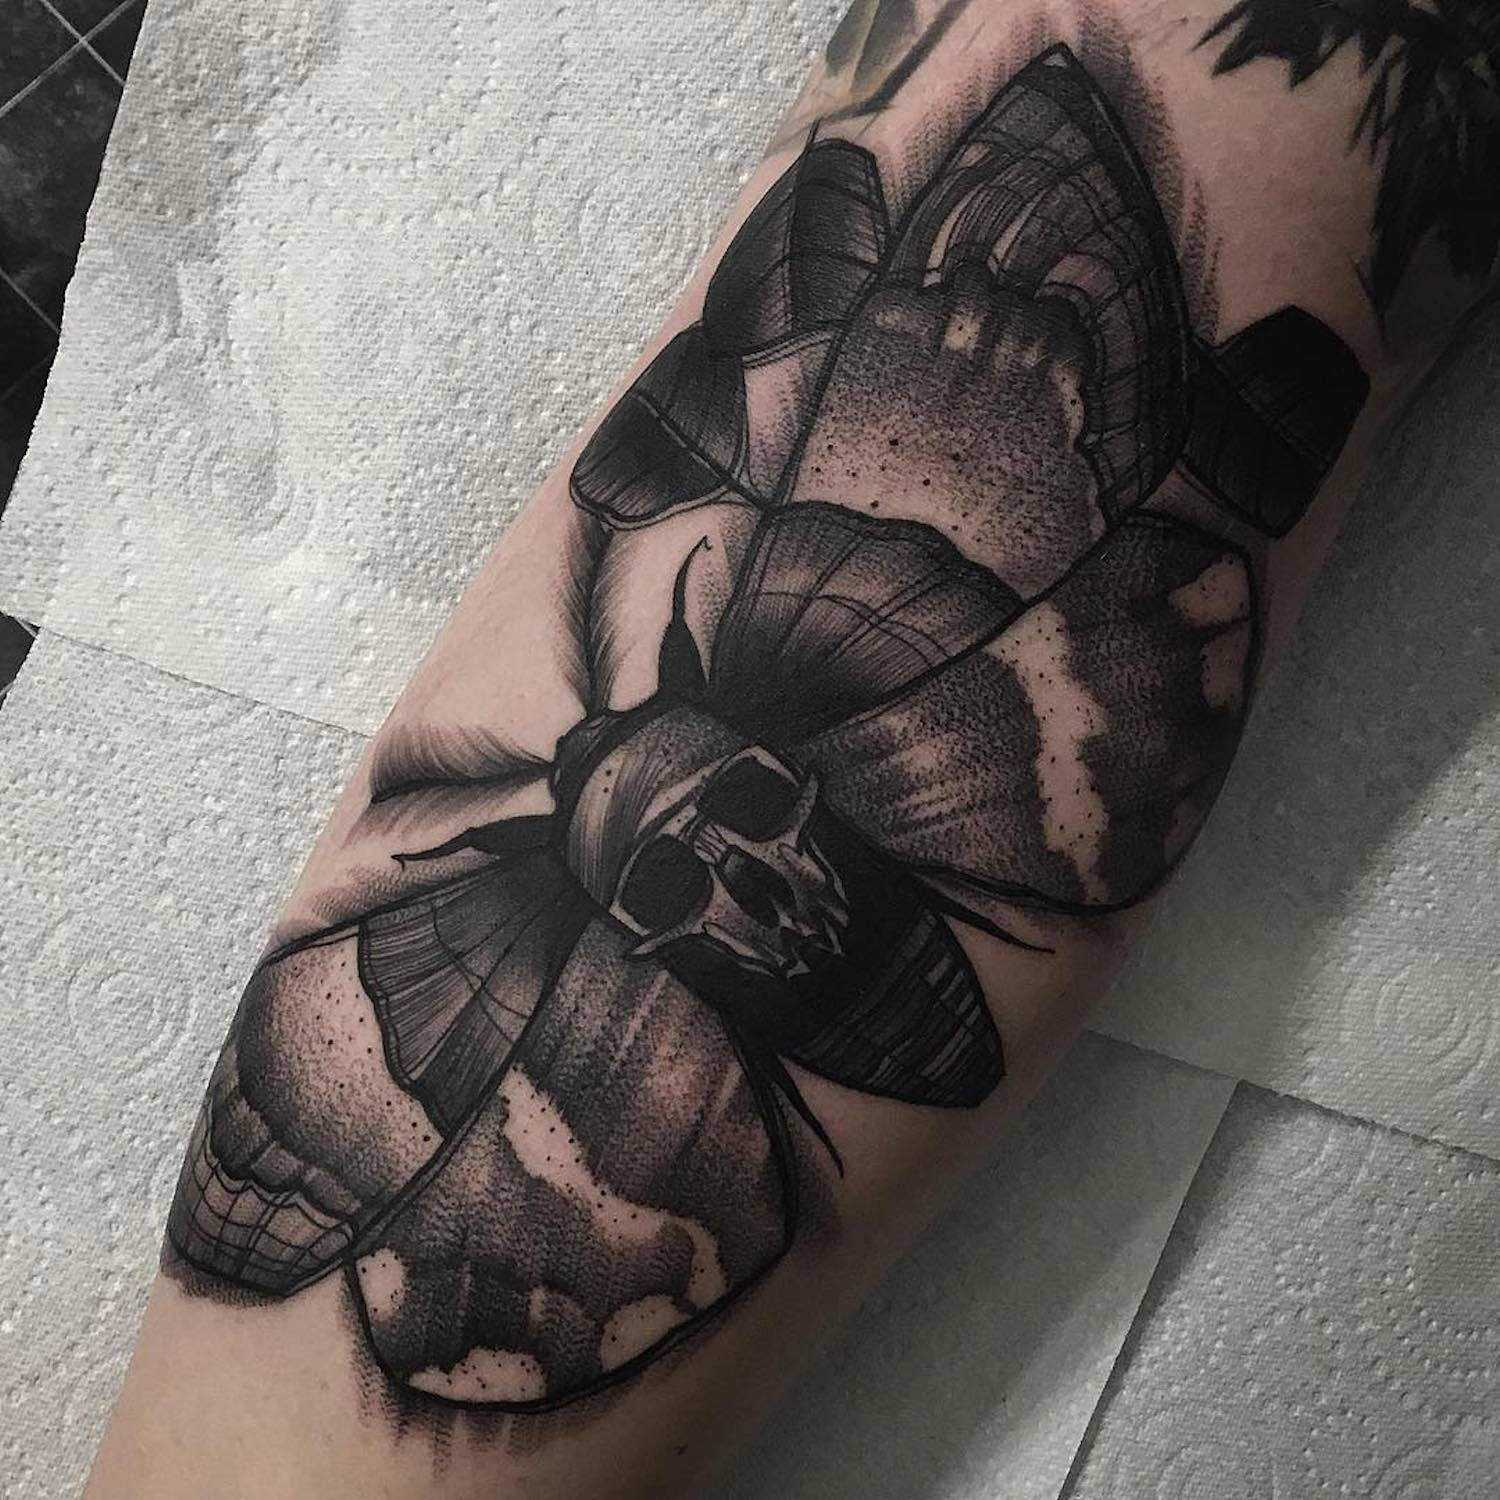 Tattoo by Phil Wilkinson